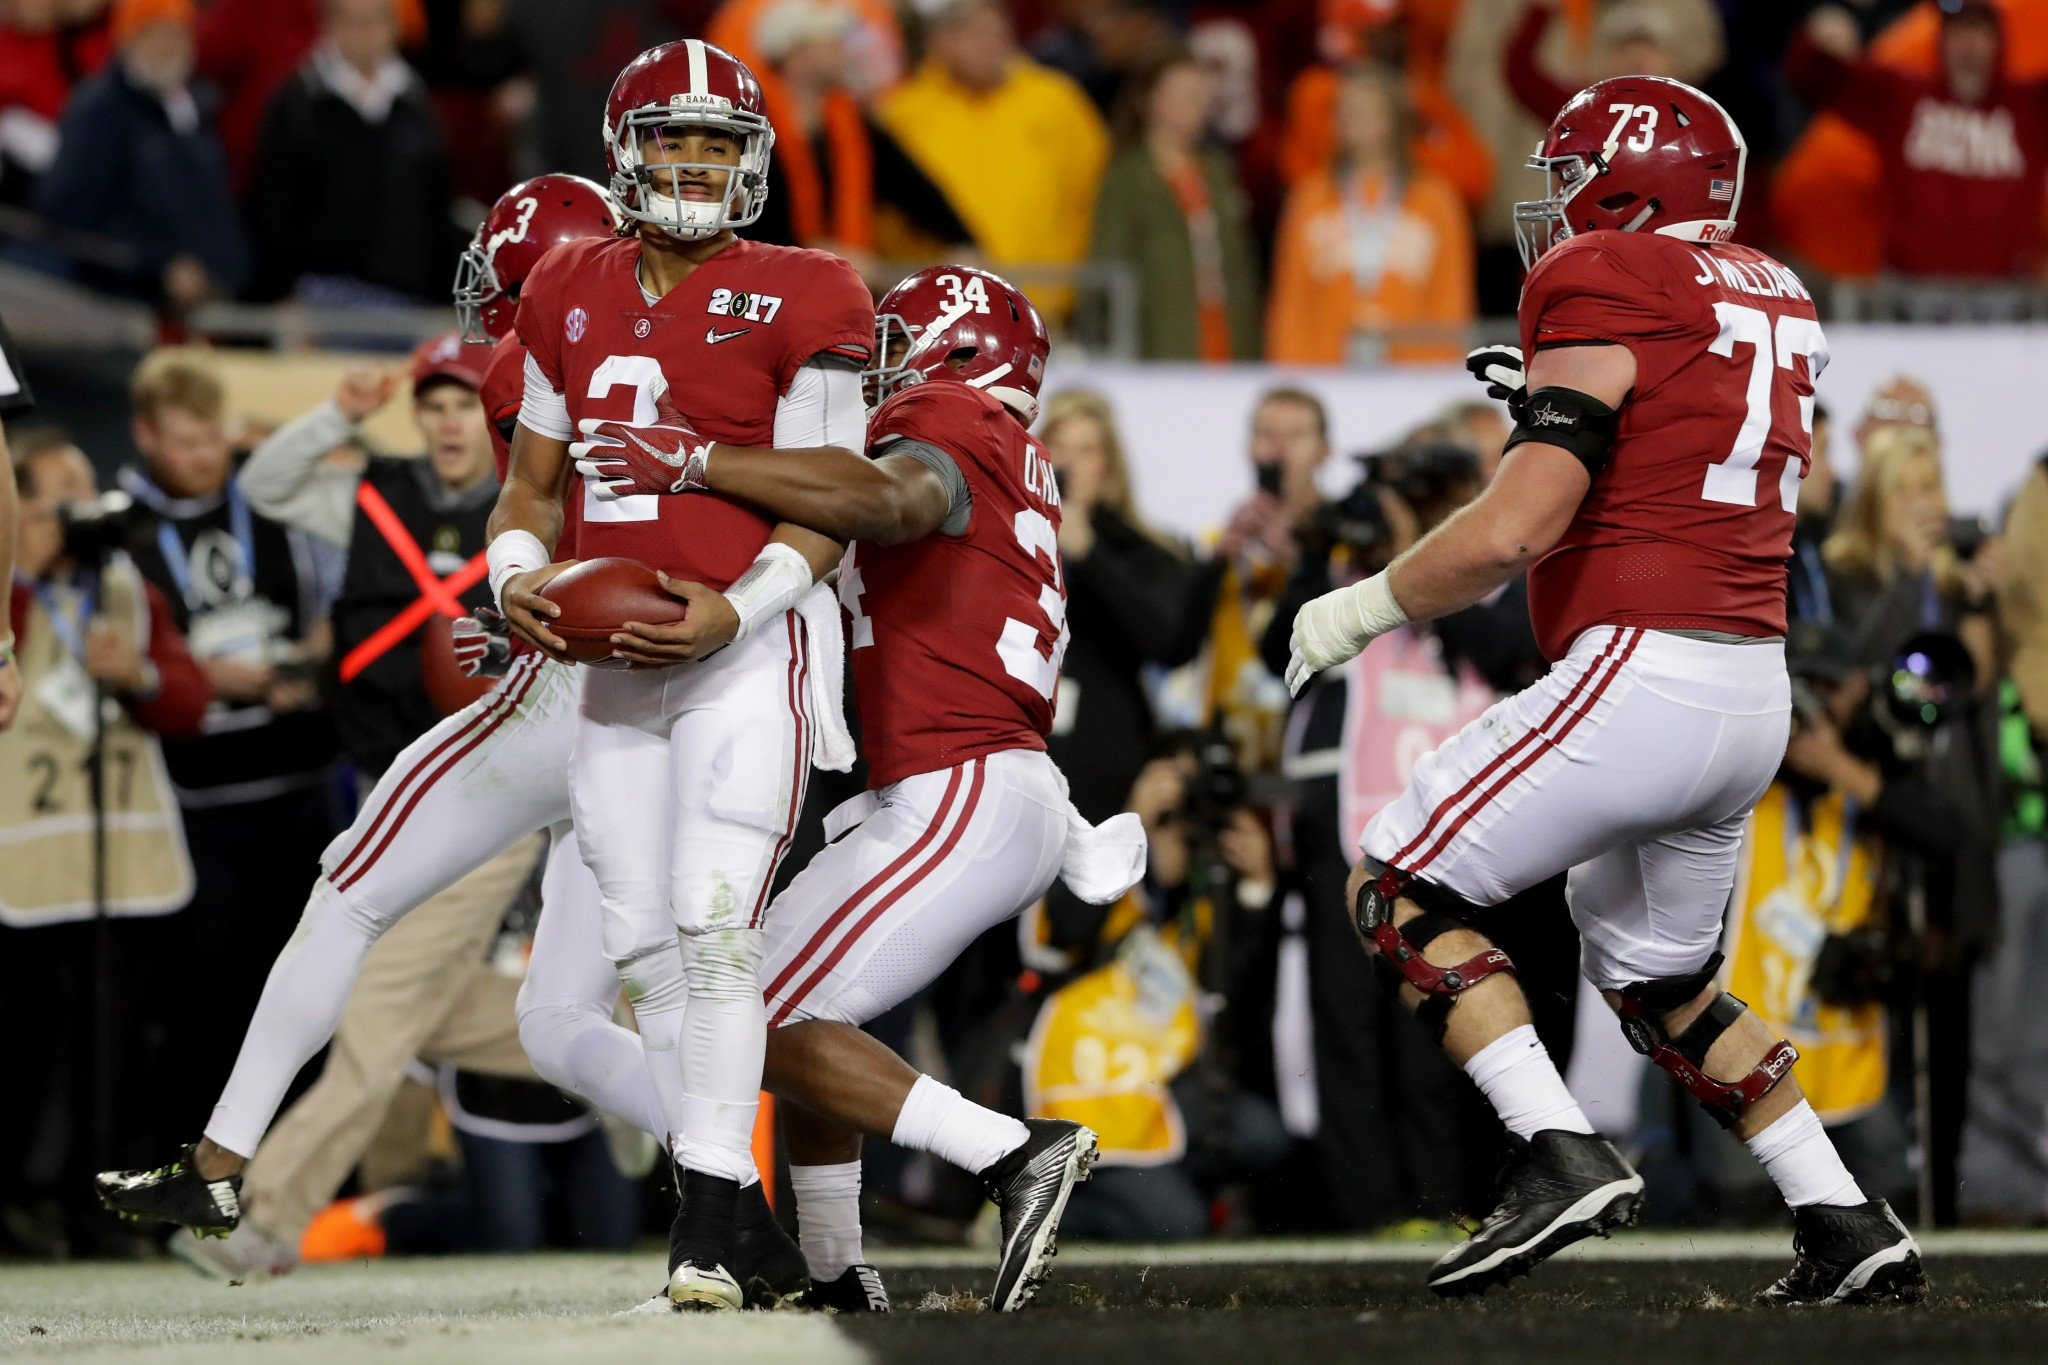 Alabama QB Jalen Hurts combined for 36 TDs as a true freshman. (Getty)